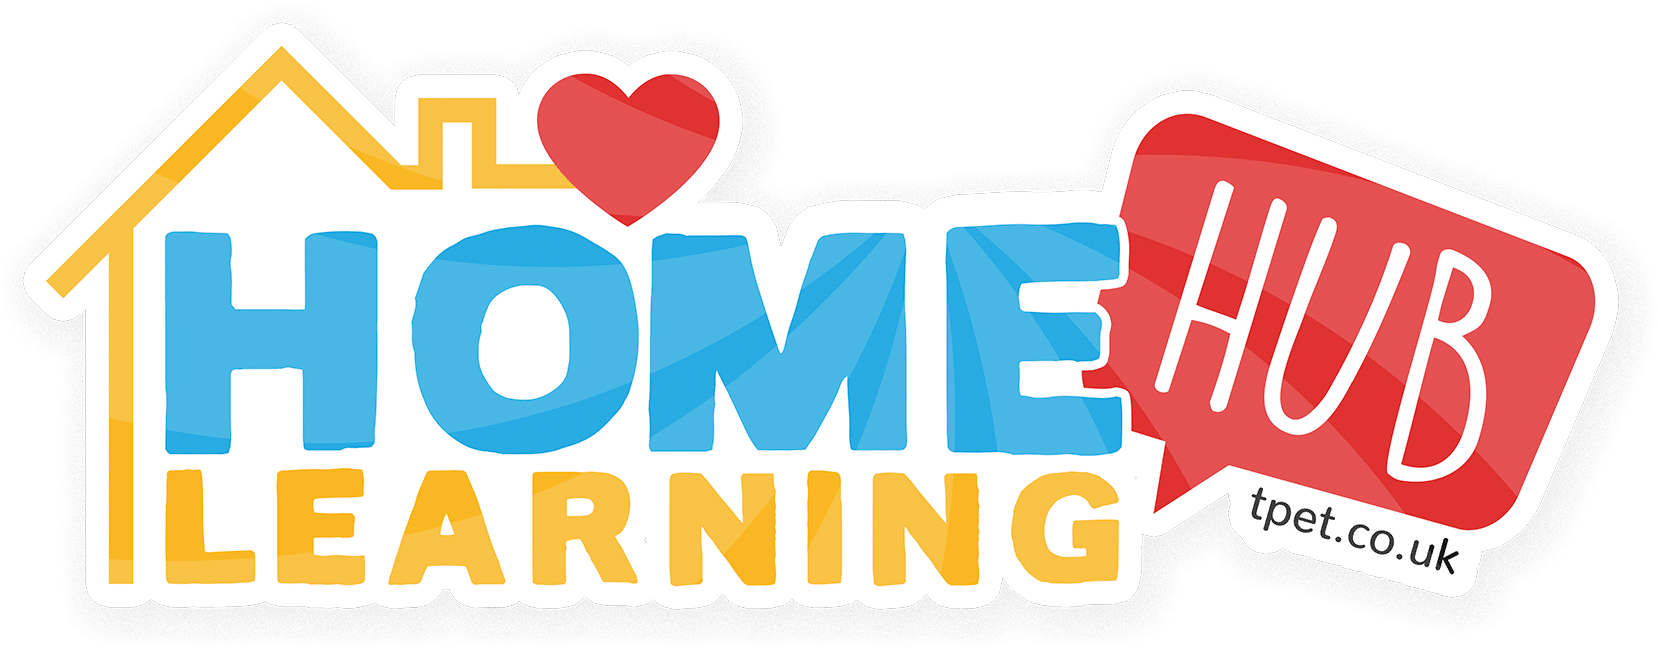 //tpet.co.uk/wp-content/uploads/2021/01/home-learning-hub-resources-web-logo.png